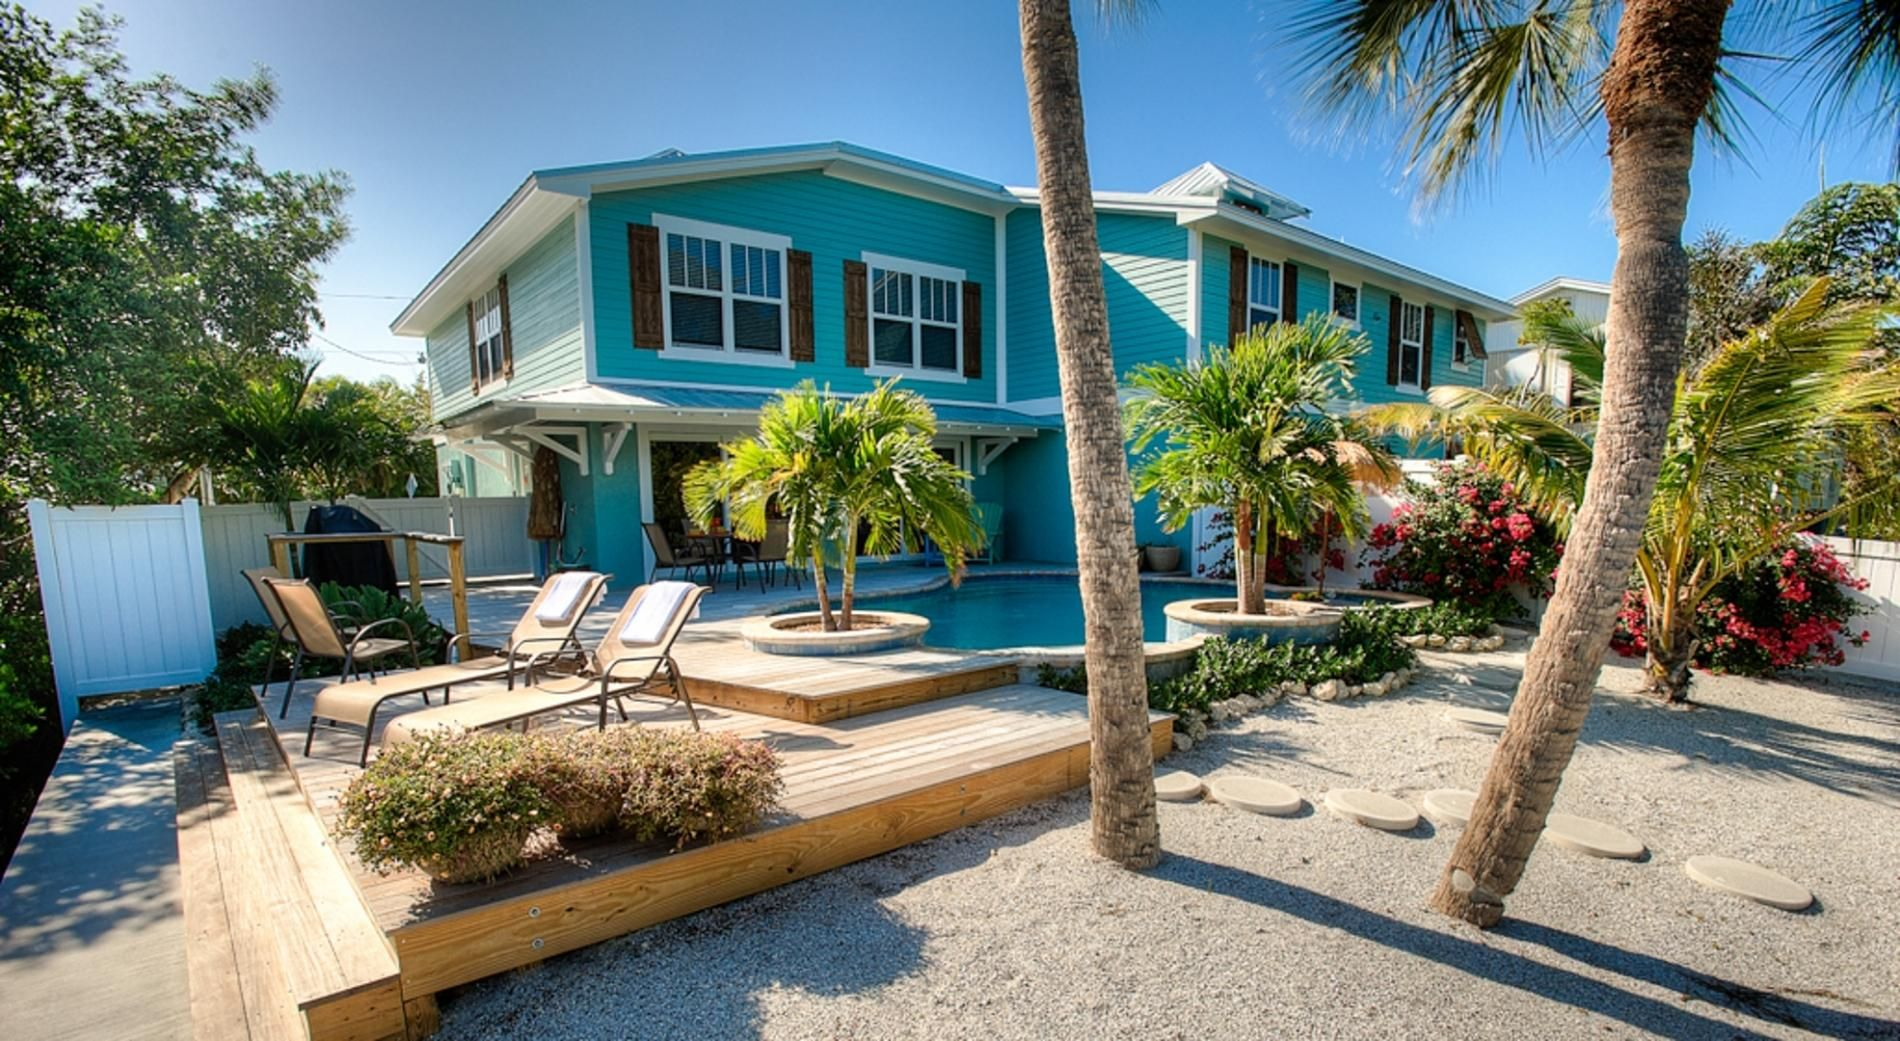 Sunset Shore Vacation Rental In Anna Maria Florida Ami Locals Island Vacation Rentals Anna Maria Island Rentals Vacation Rental